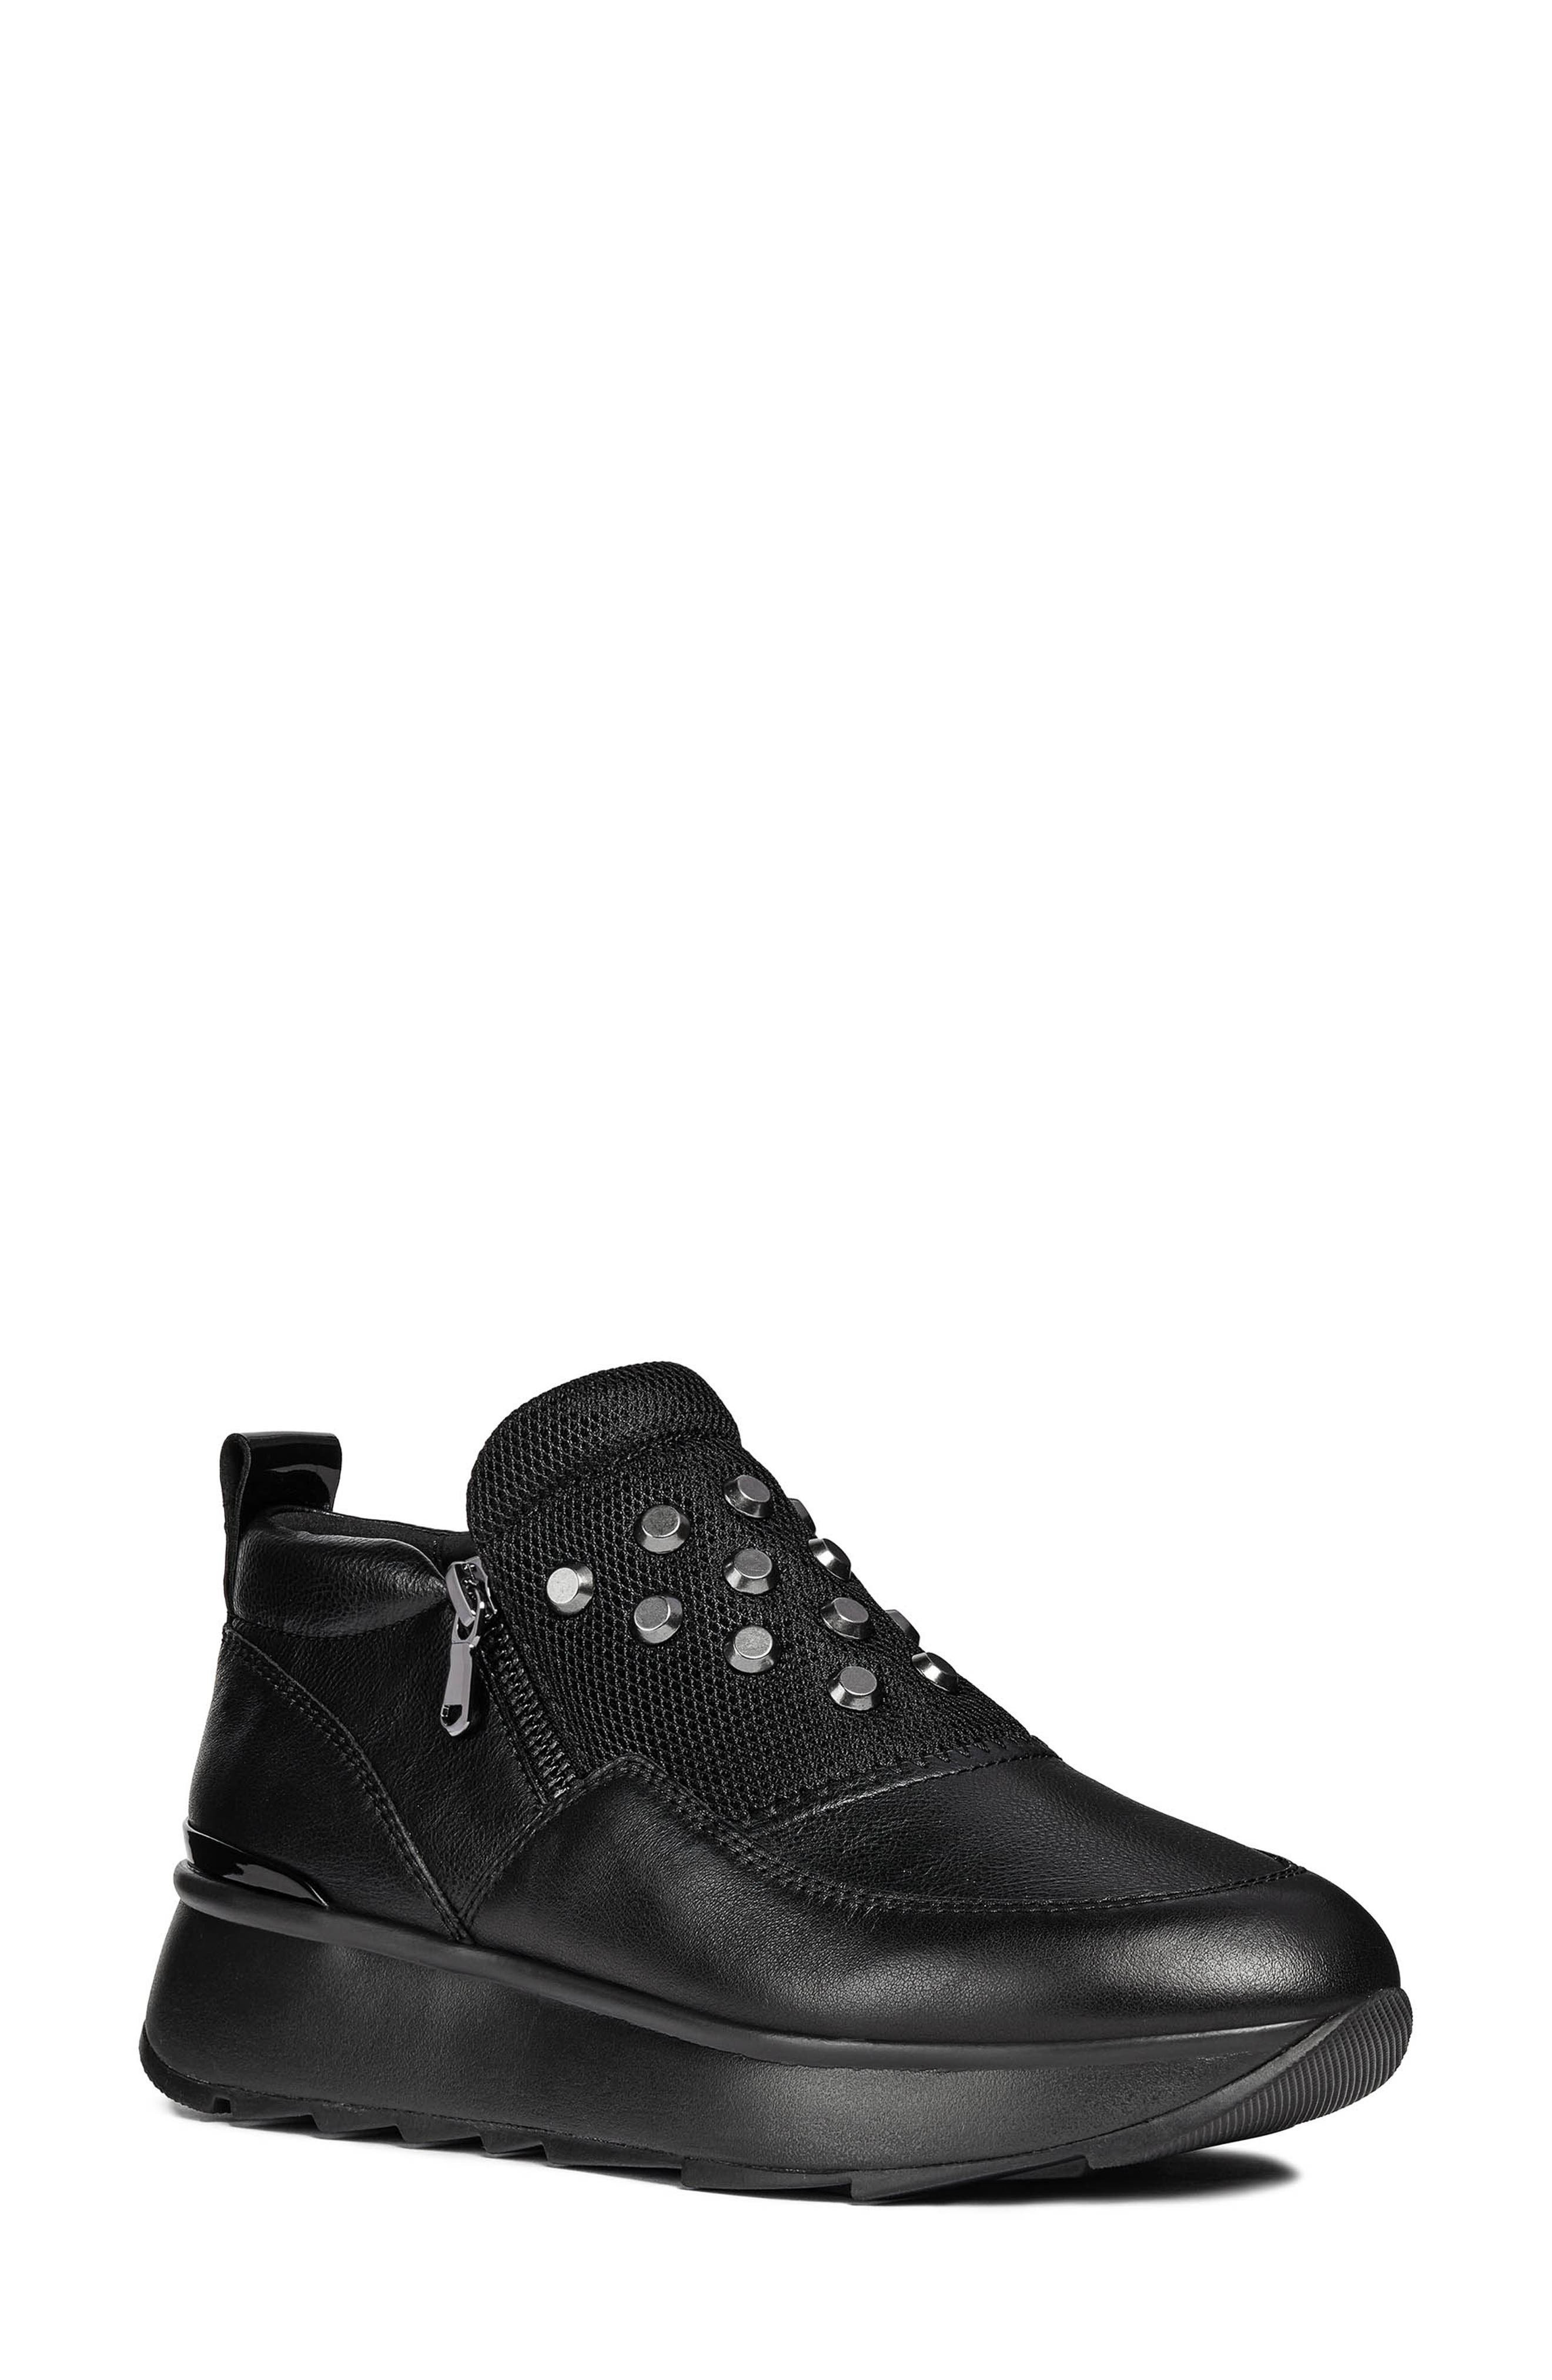 Gendry Sneaker,                         Main,                         color, BLACK LEATHER